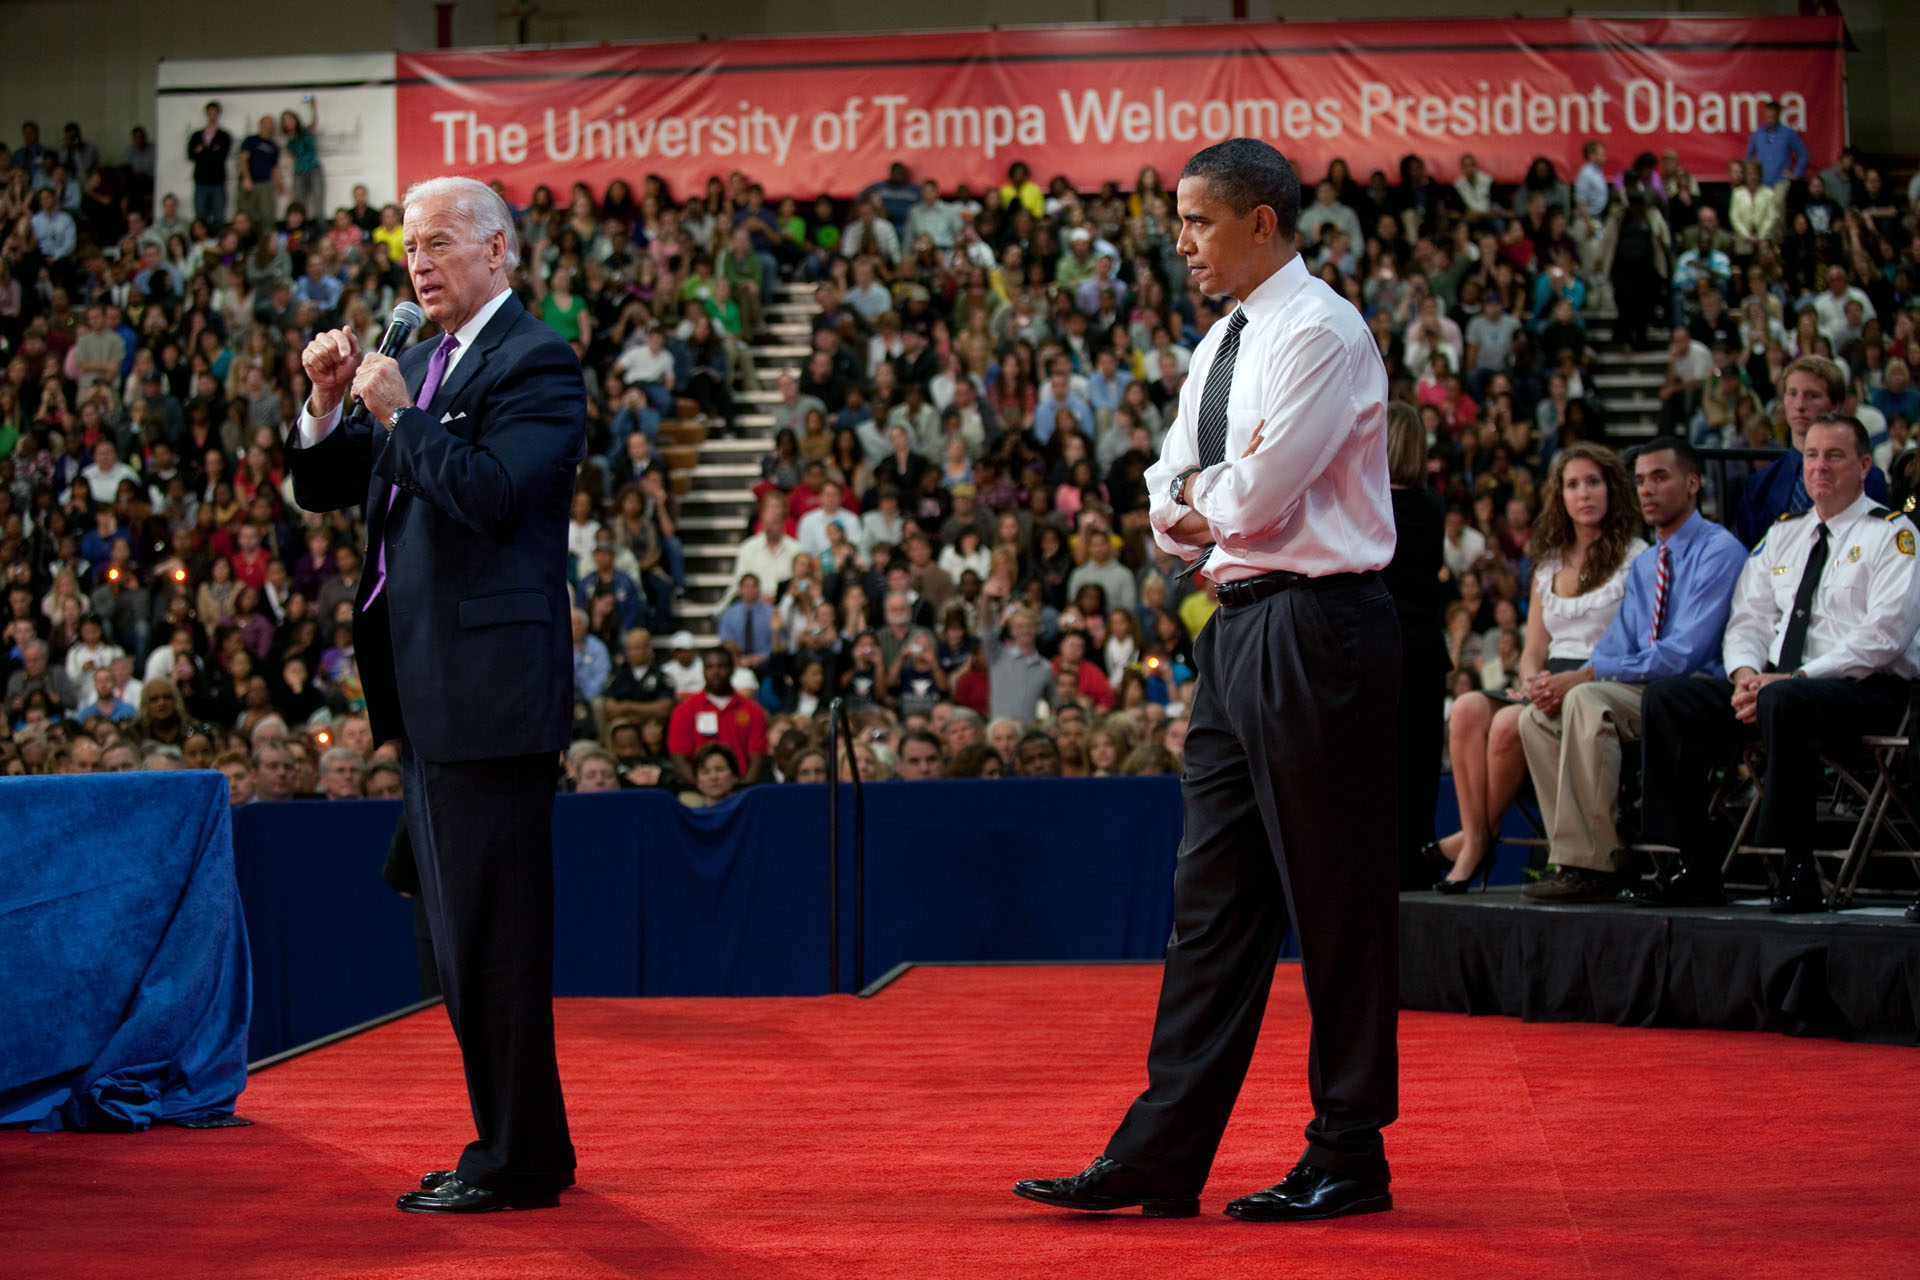 The Vice President Speaks at a Town Hall with the President in Tampa, Florida